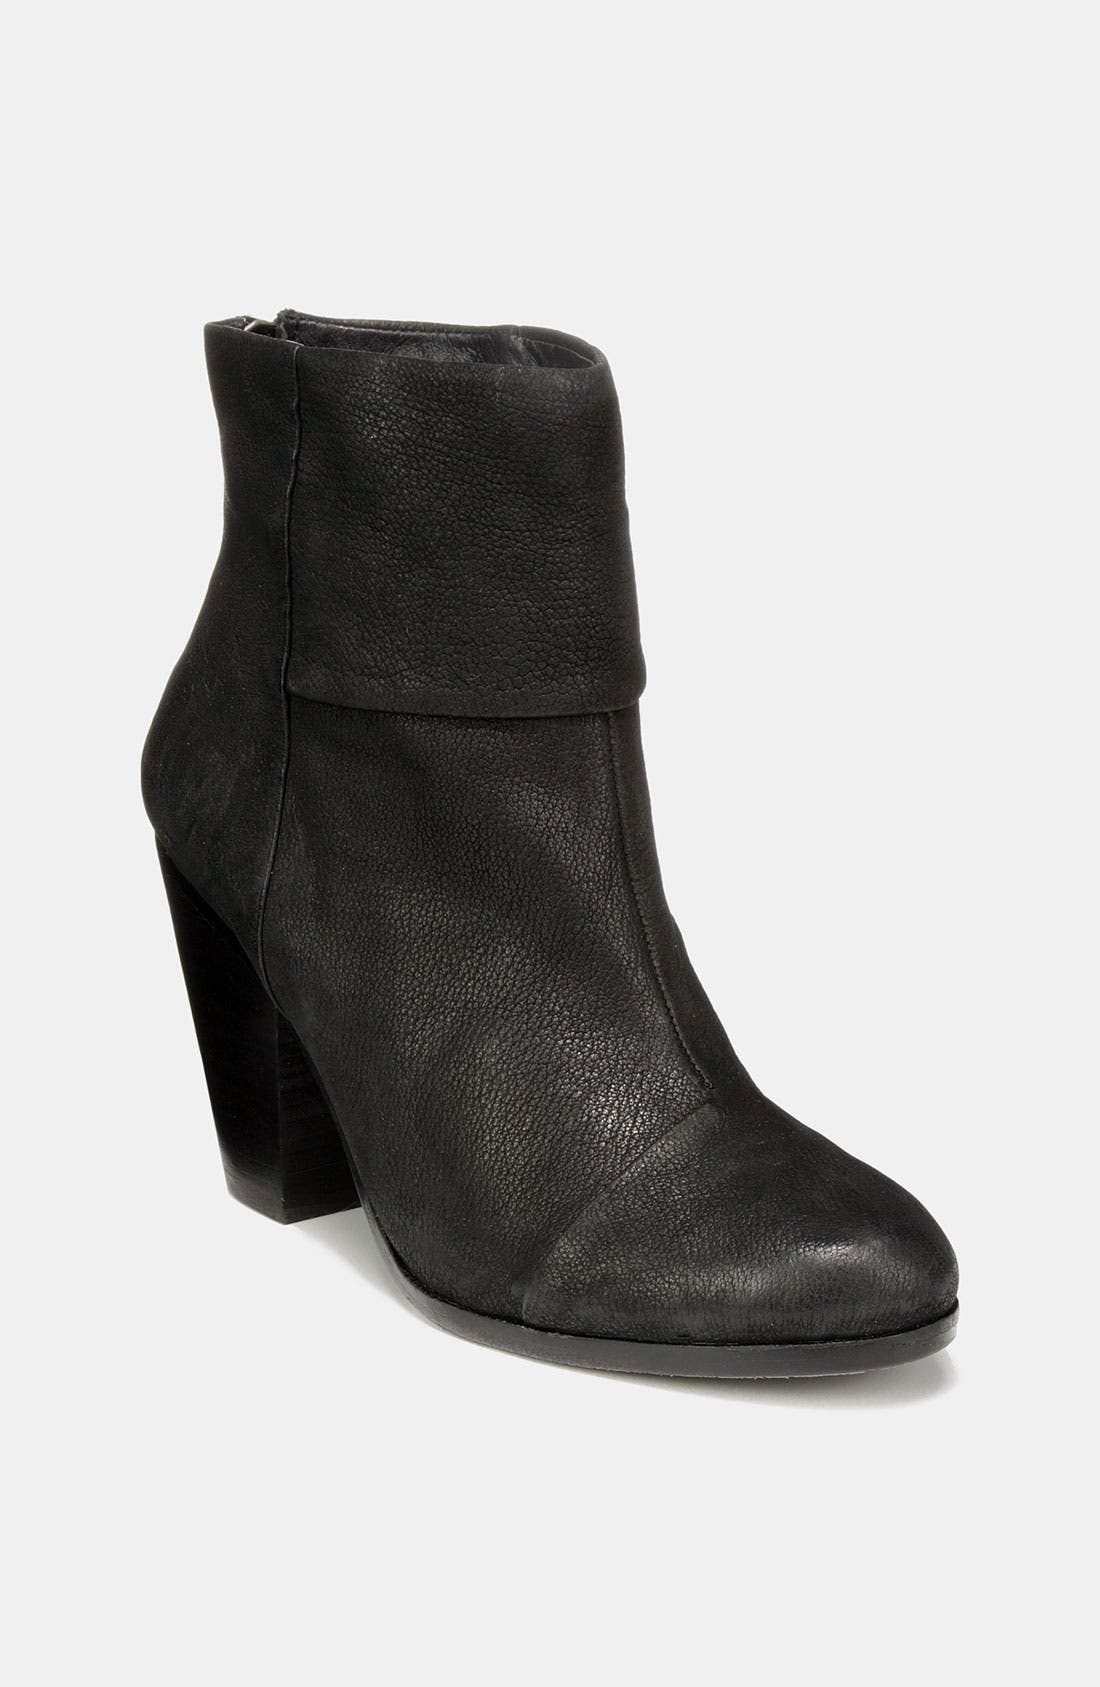 Alternate Image 1 Selected - Vince Camuto 'Hadley' Bootie